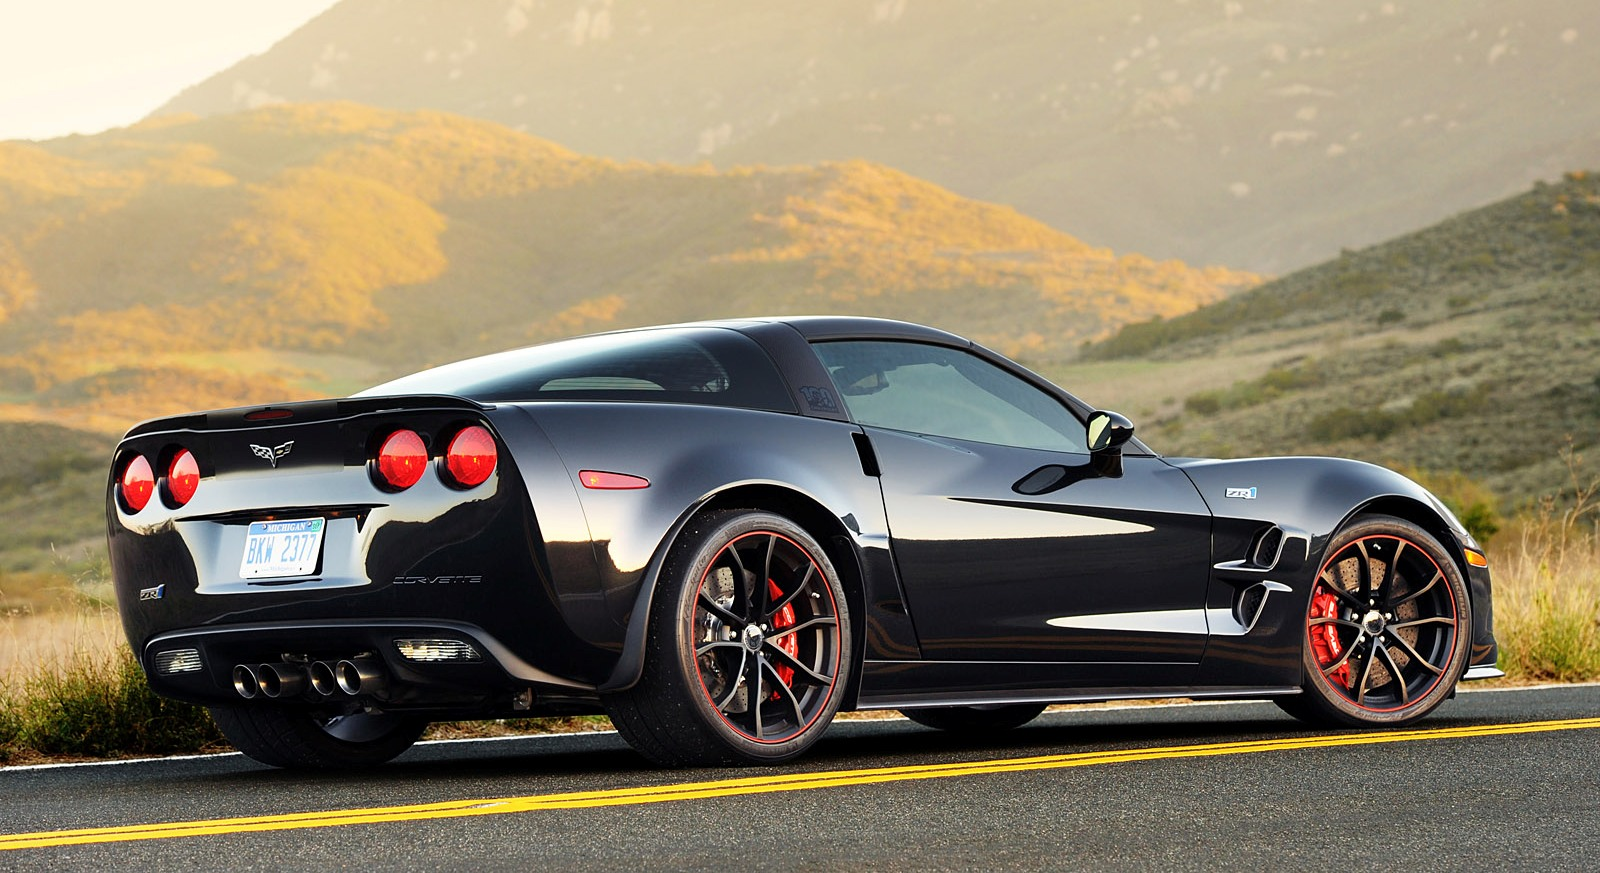 Chevrolet Corvette ZR1 2013